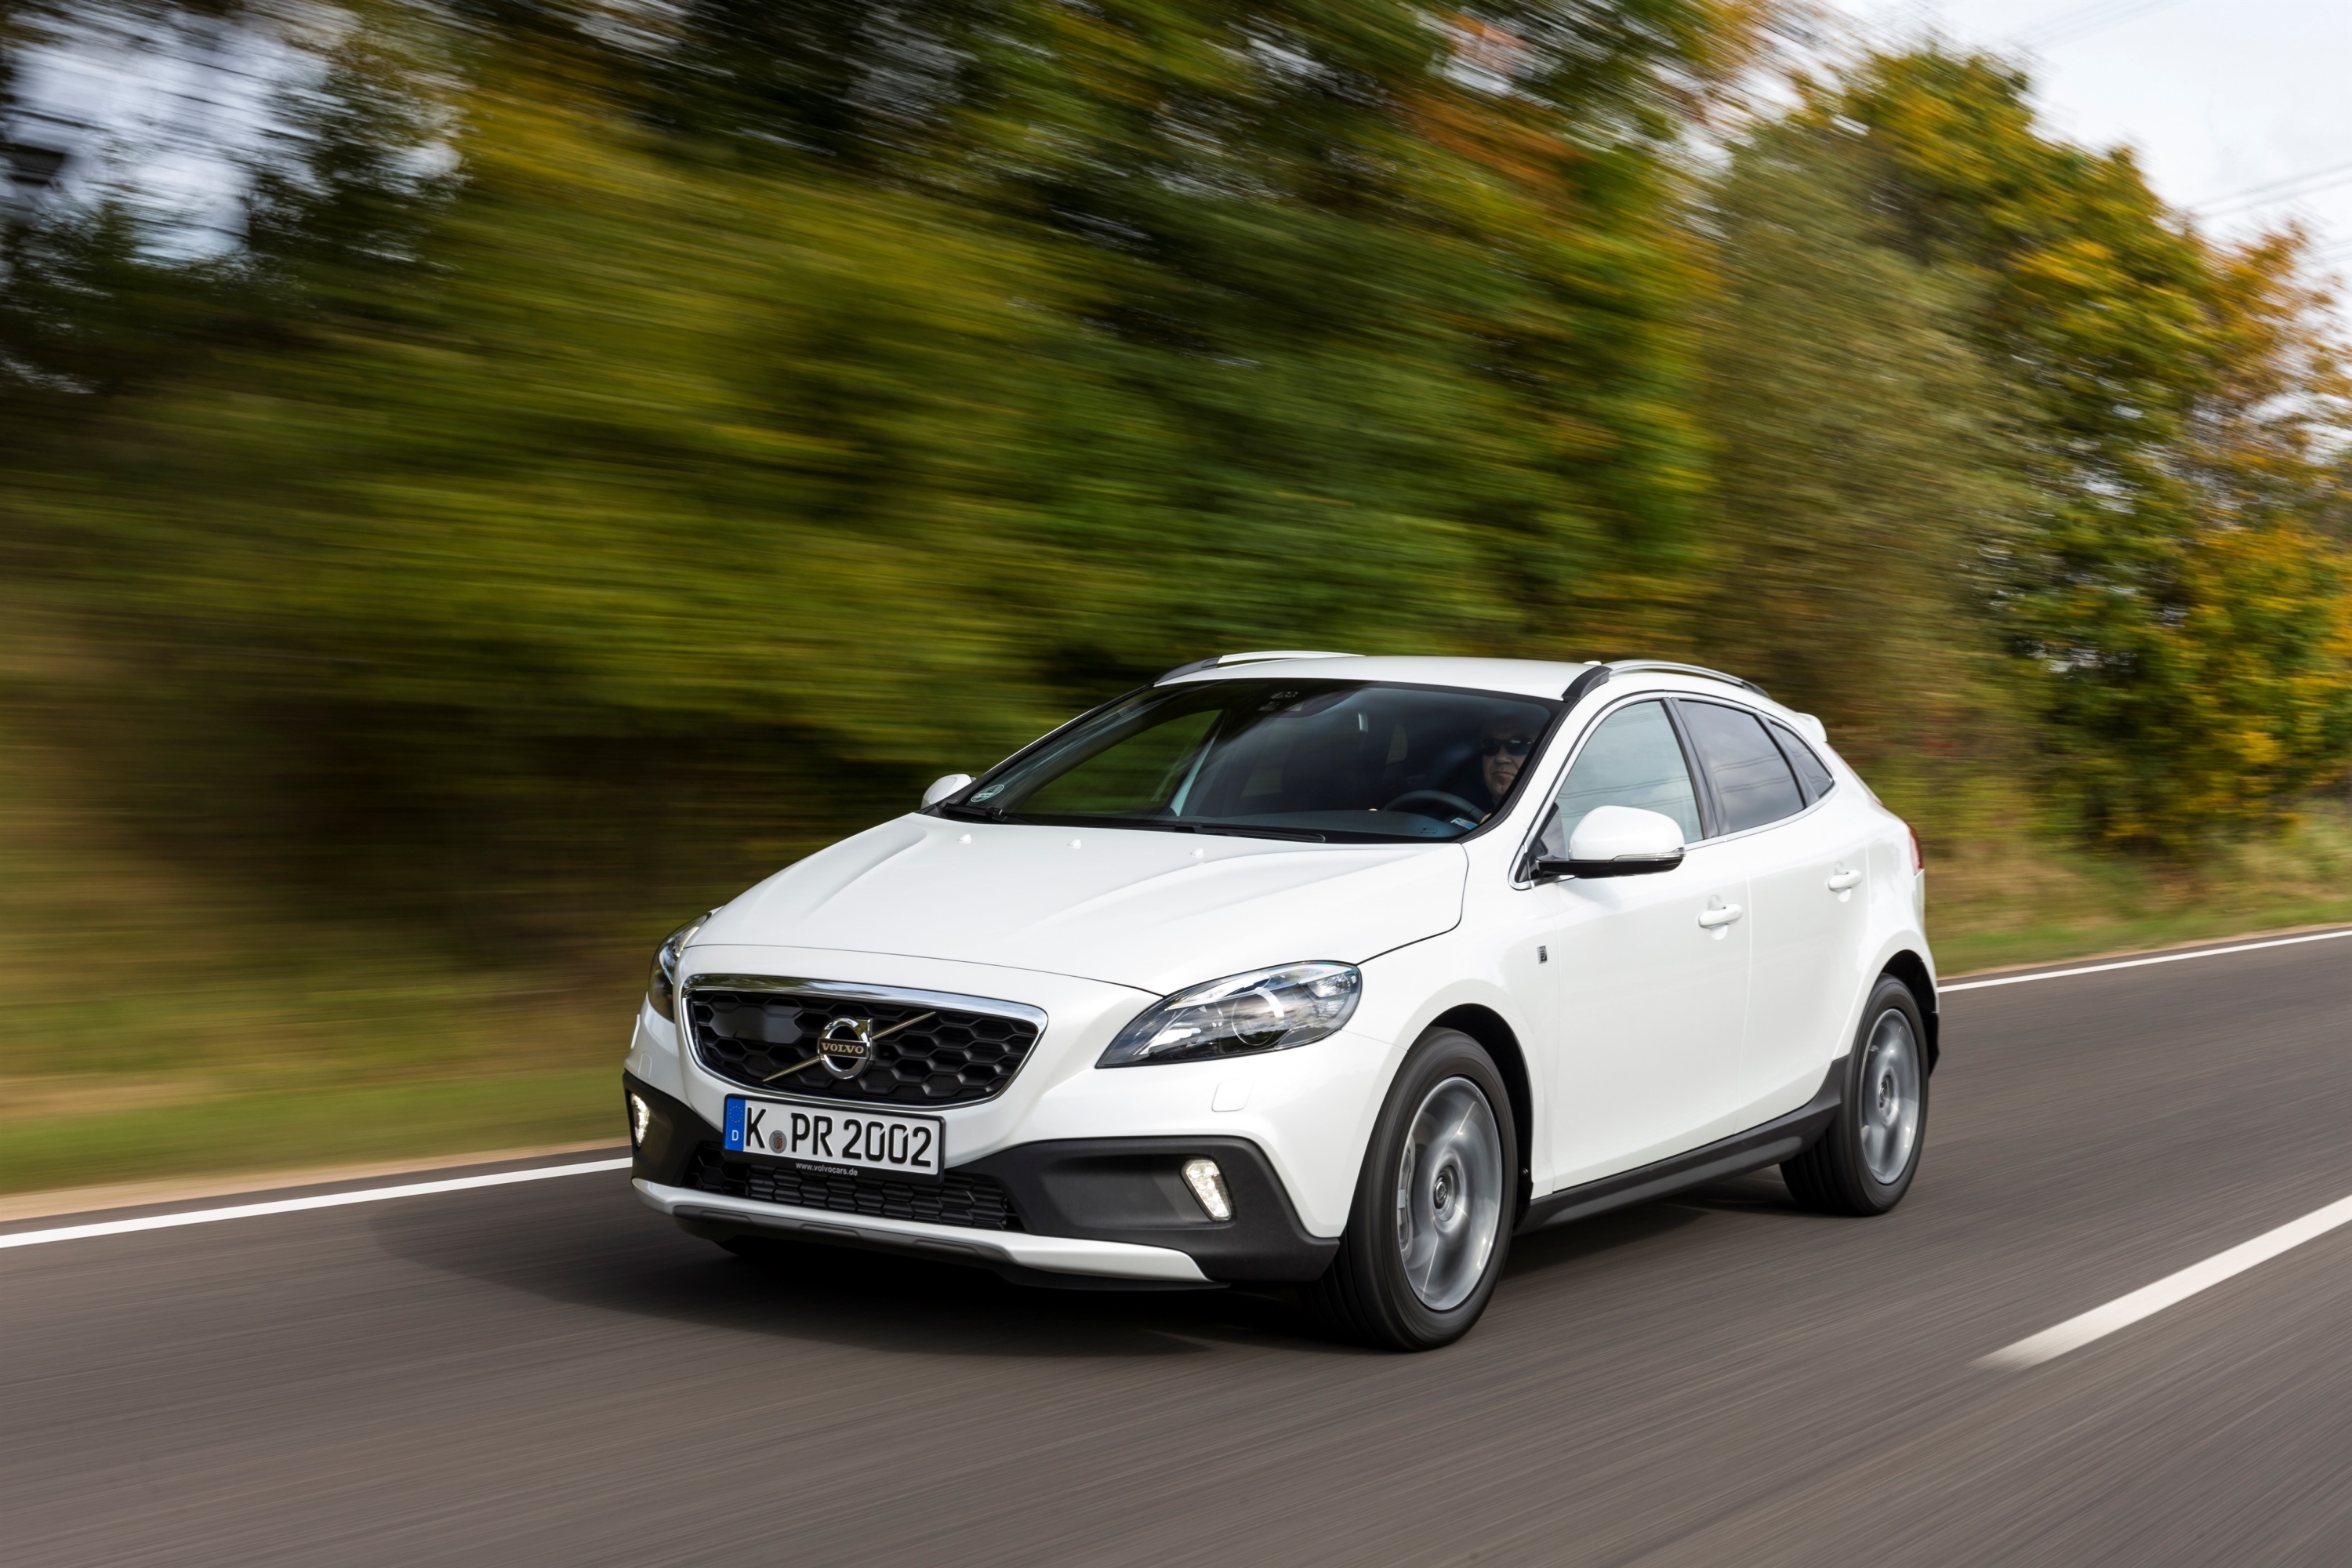 volvo v40 cross country t5 awd erstes modell mit drive e. Black Bedroom Furniture Sets. Home Design Ideas